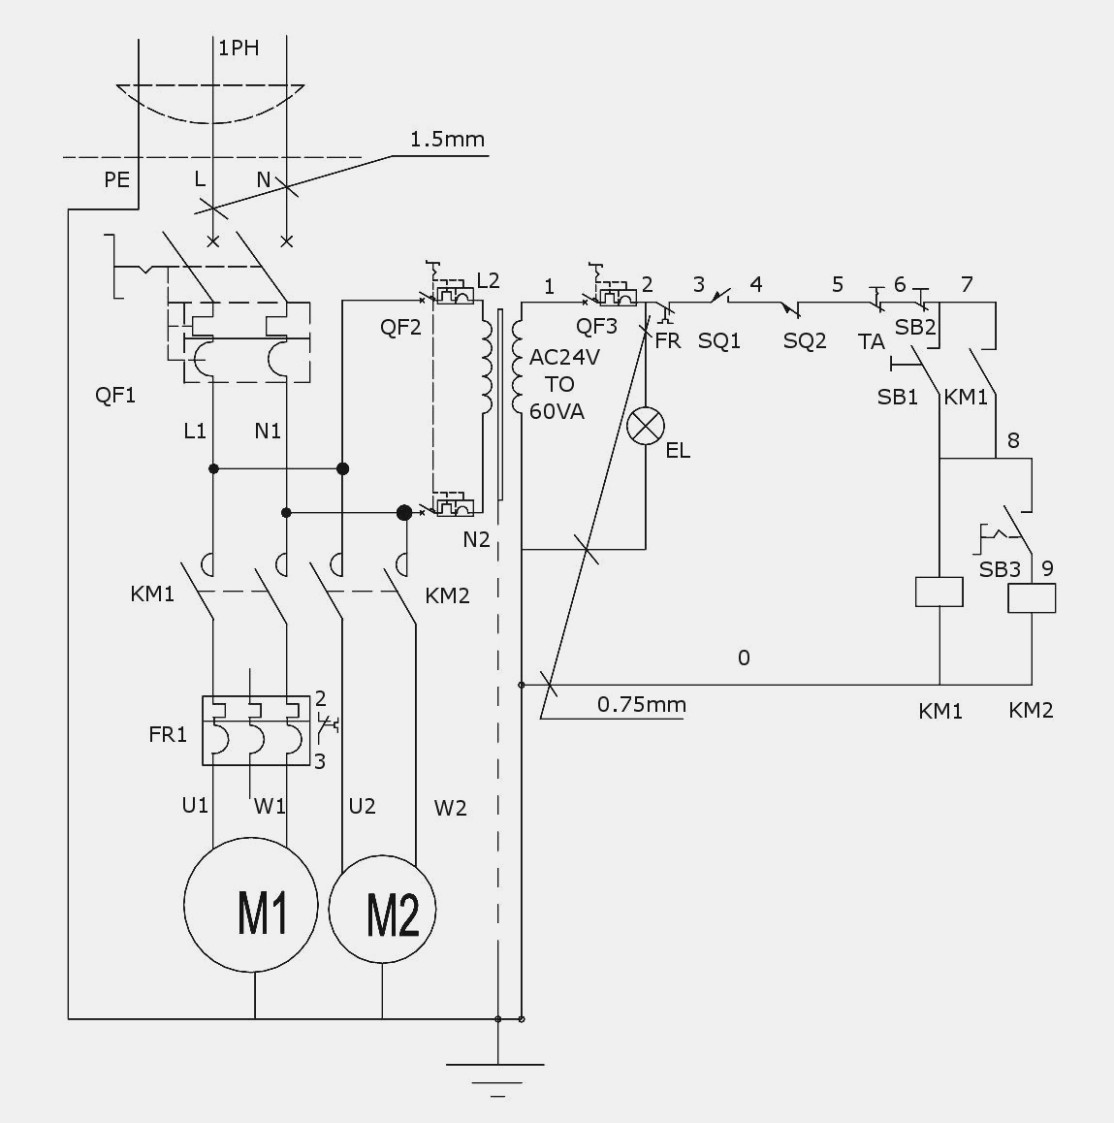 Myers Hr50s Wiring Diagram - M38 Wiring Diagram for Wiring Diagram  Schematics   Myers Hr50s Wiring Diagram      Wiring Diagram Schematics